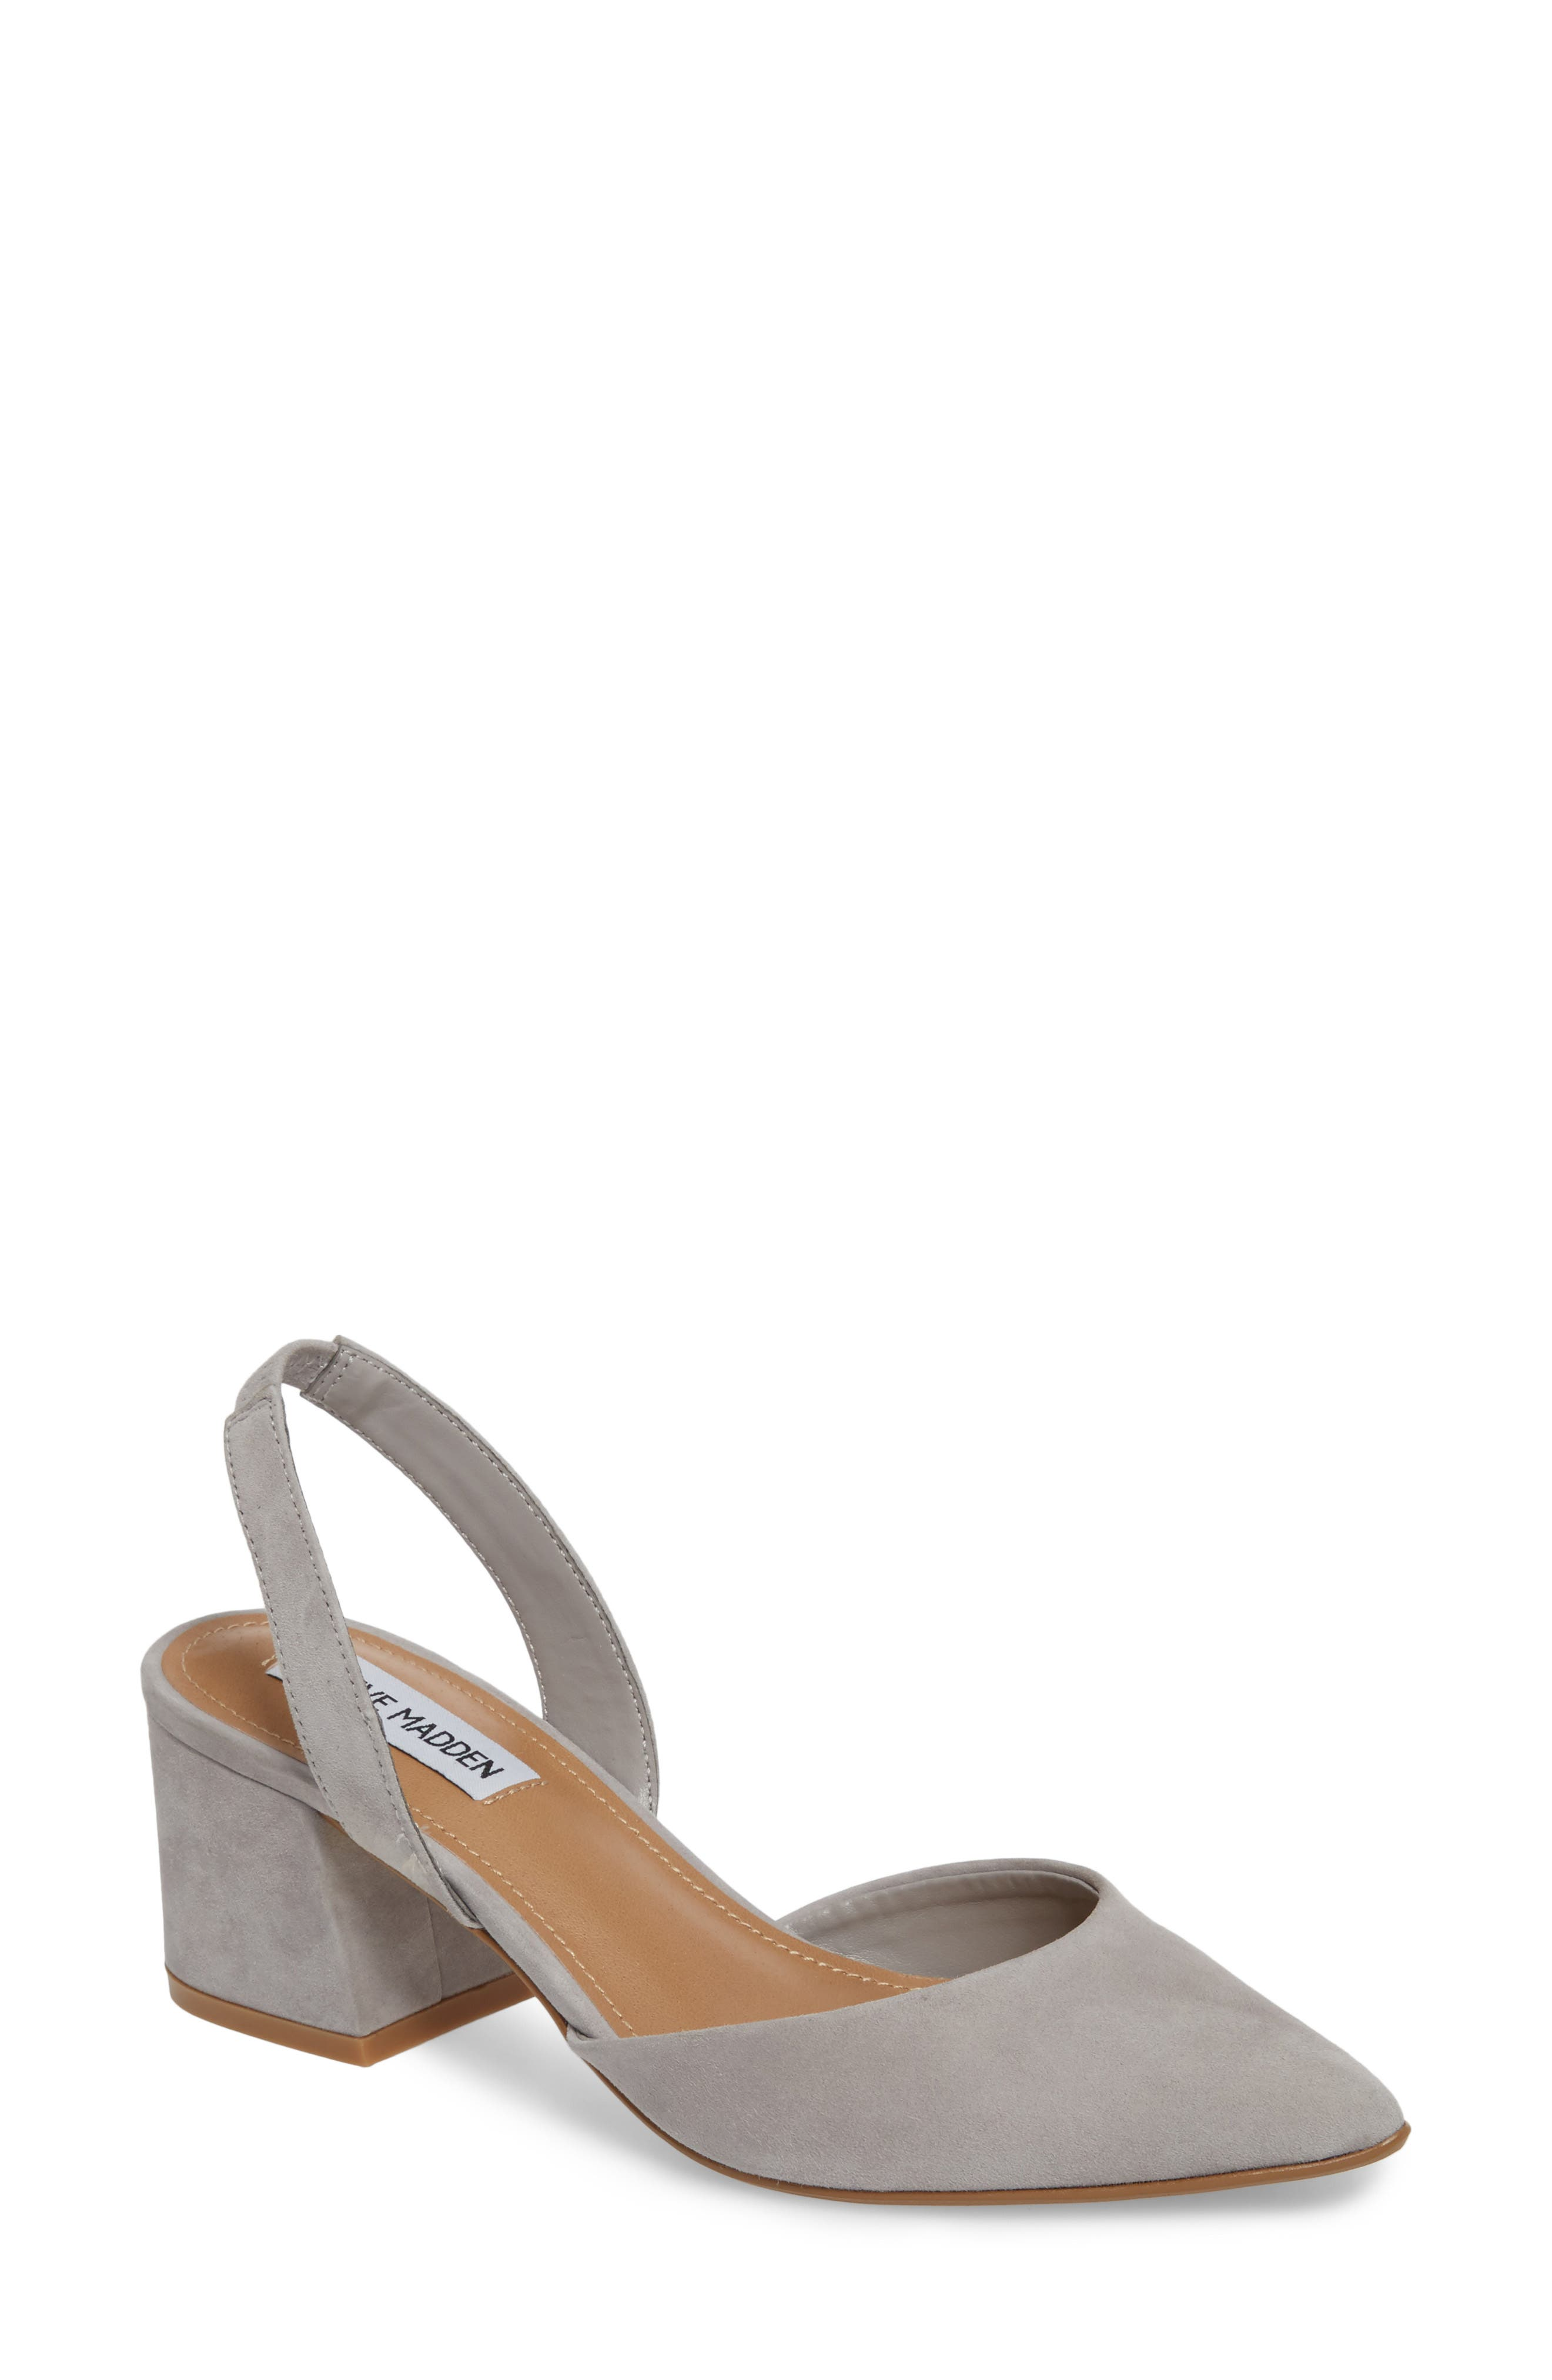 Steve Madden Day Pump (Women)